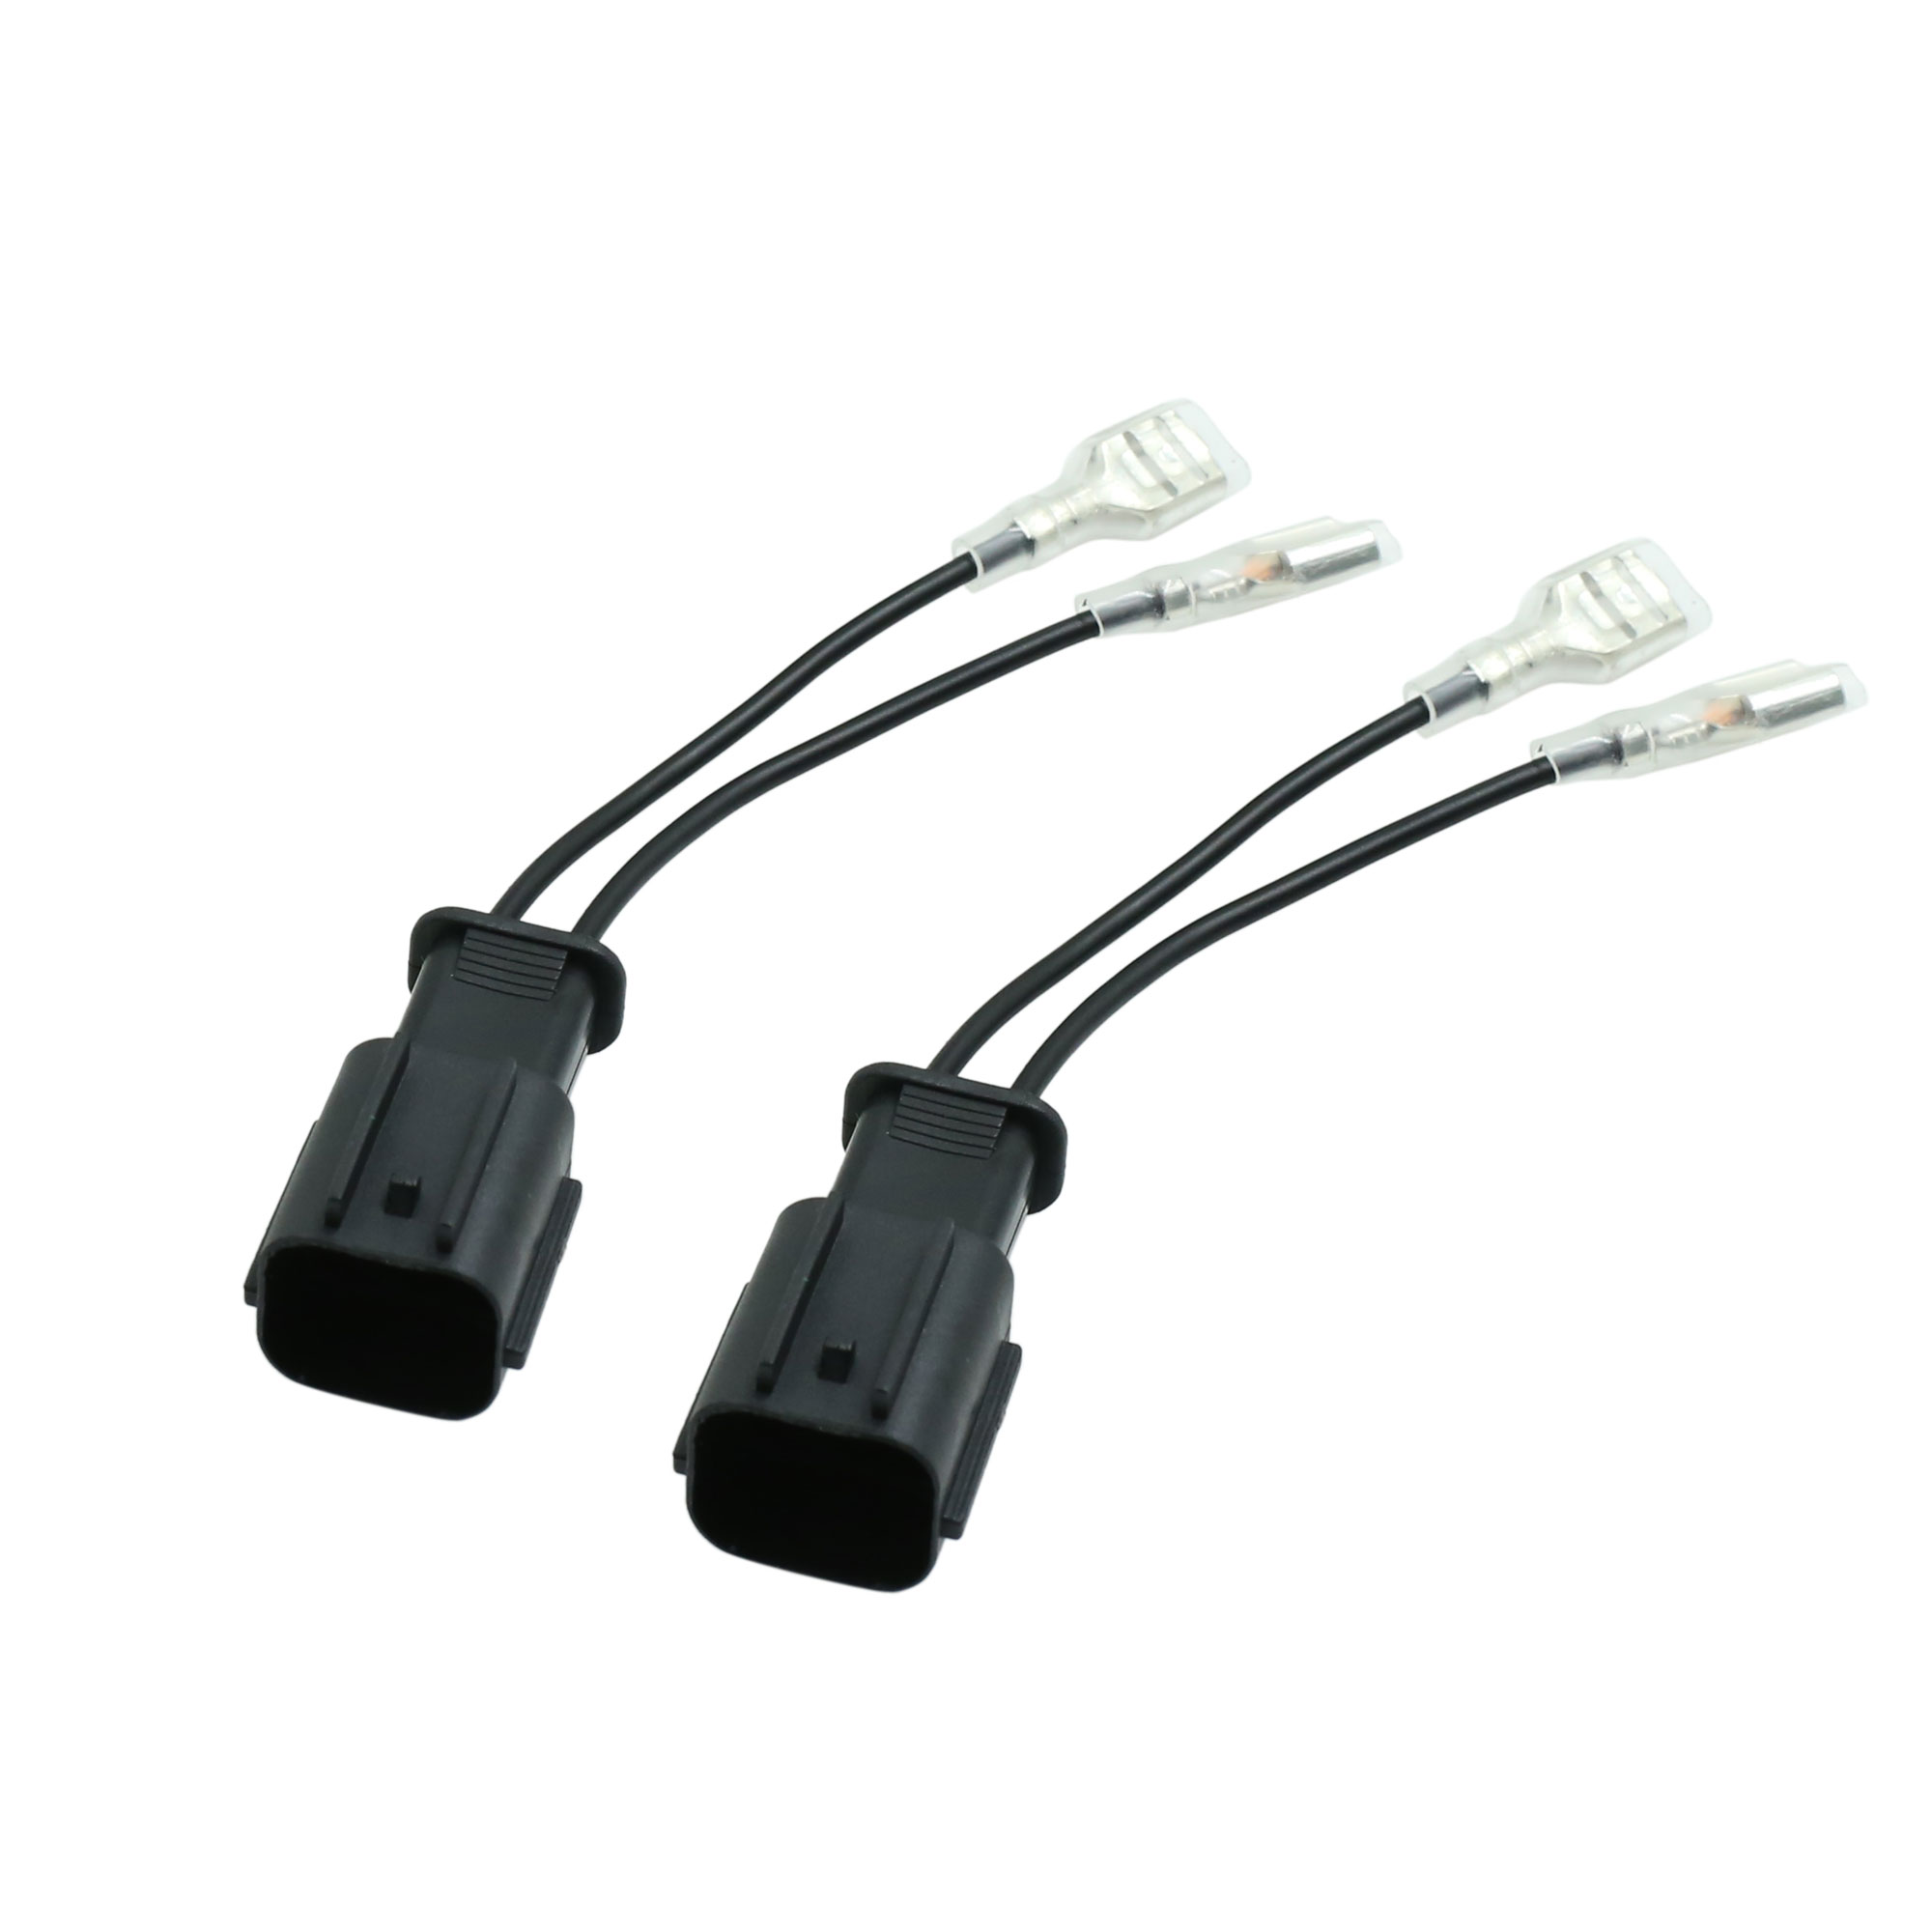 medium resolution of dc 12v car audio speaker wire harness adapter connector for buick excelle 2pcs walmart canada